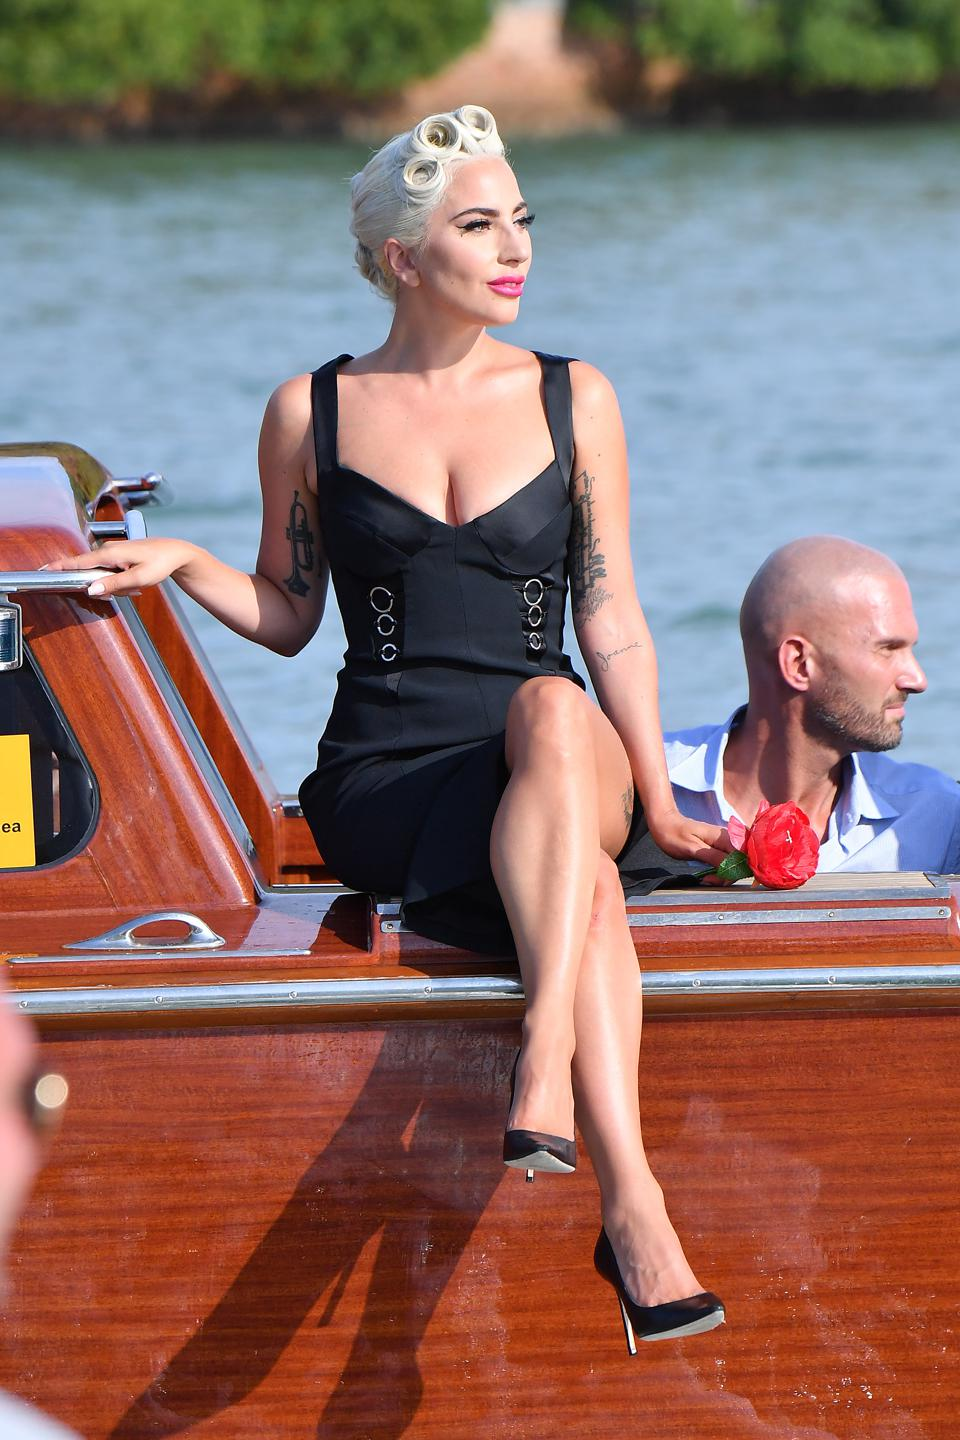 Making a Splash: Lady Gaga arrives in Venice for the premiere of 'A Star is Born' in a dress by Azzedine Alaïa.